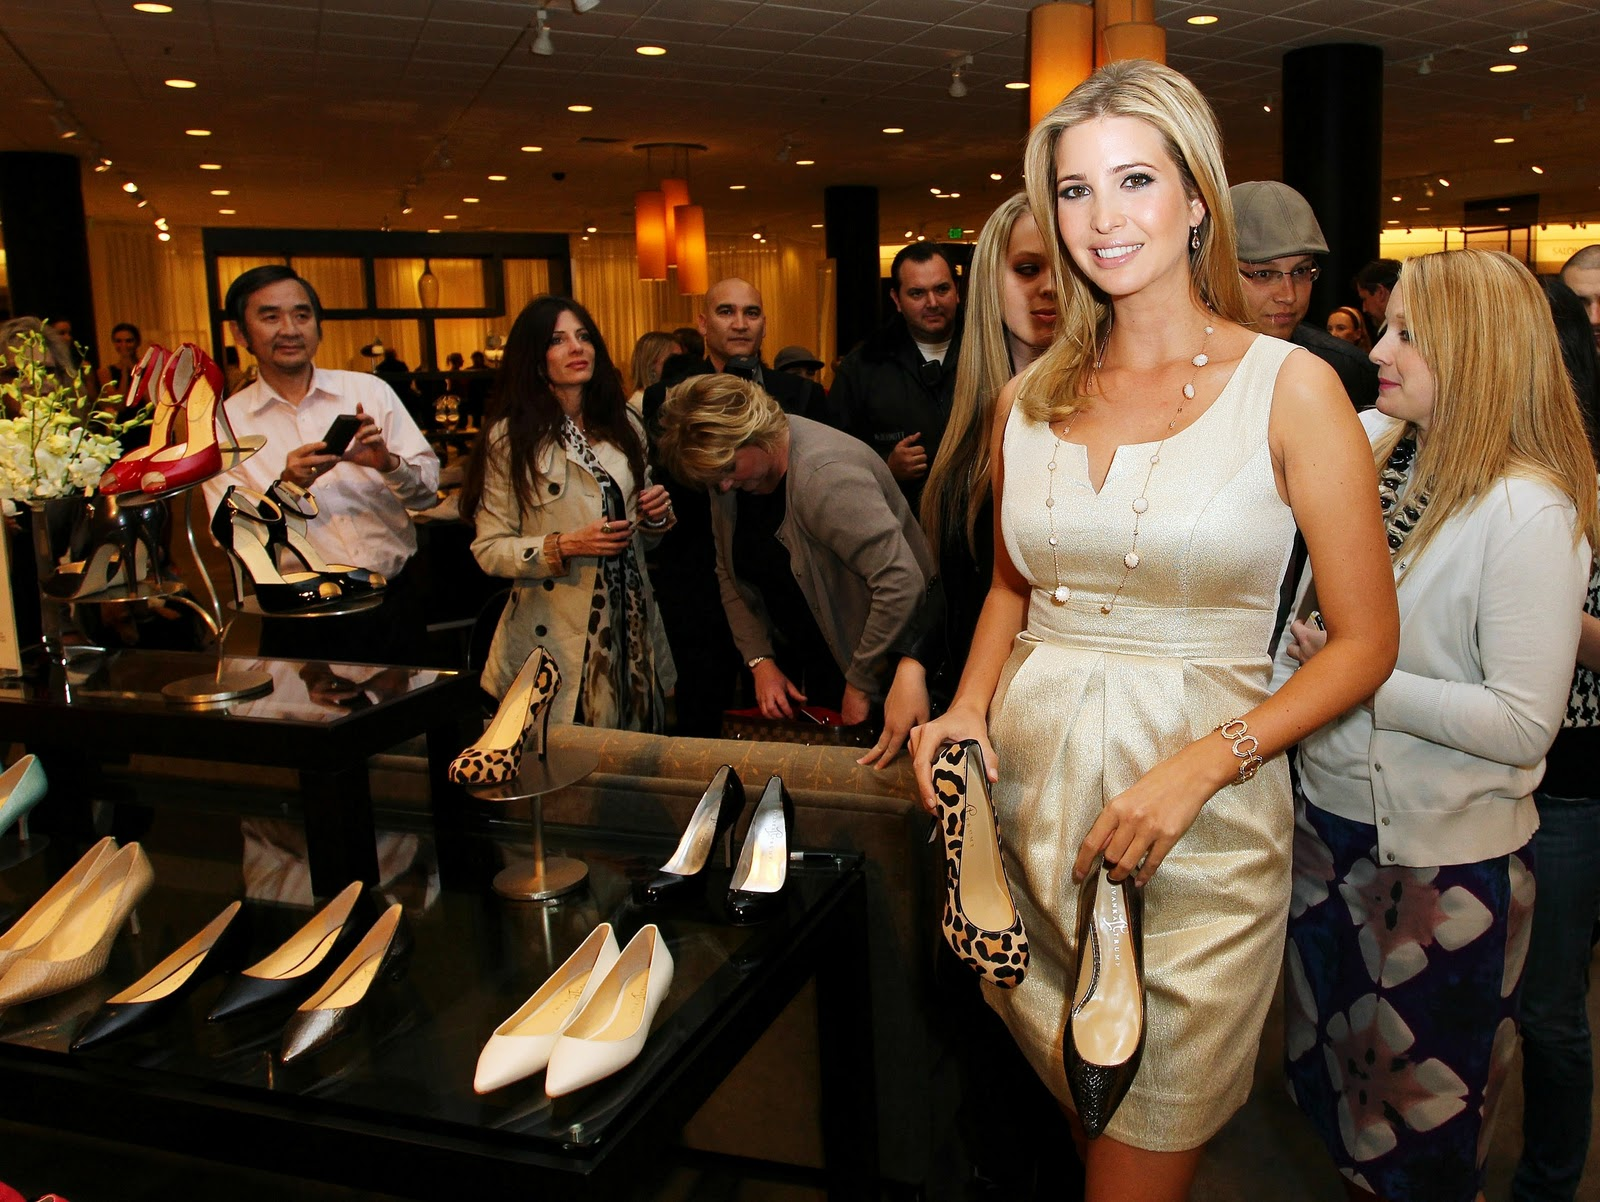 Ivanka Trump's footwear and clothing lines seem to be suffering as a result of her father's presidency.  Many consumers have boycotted her brand, and Nordstrom announced they are ceasing purchases of her line due to declining sales.